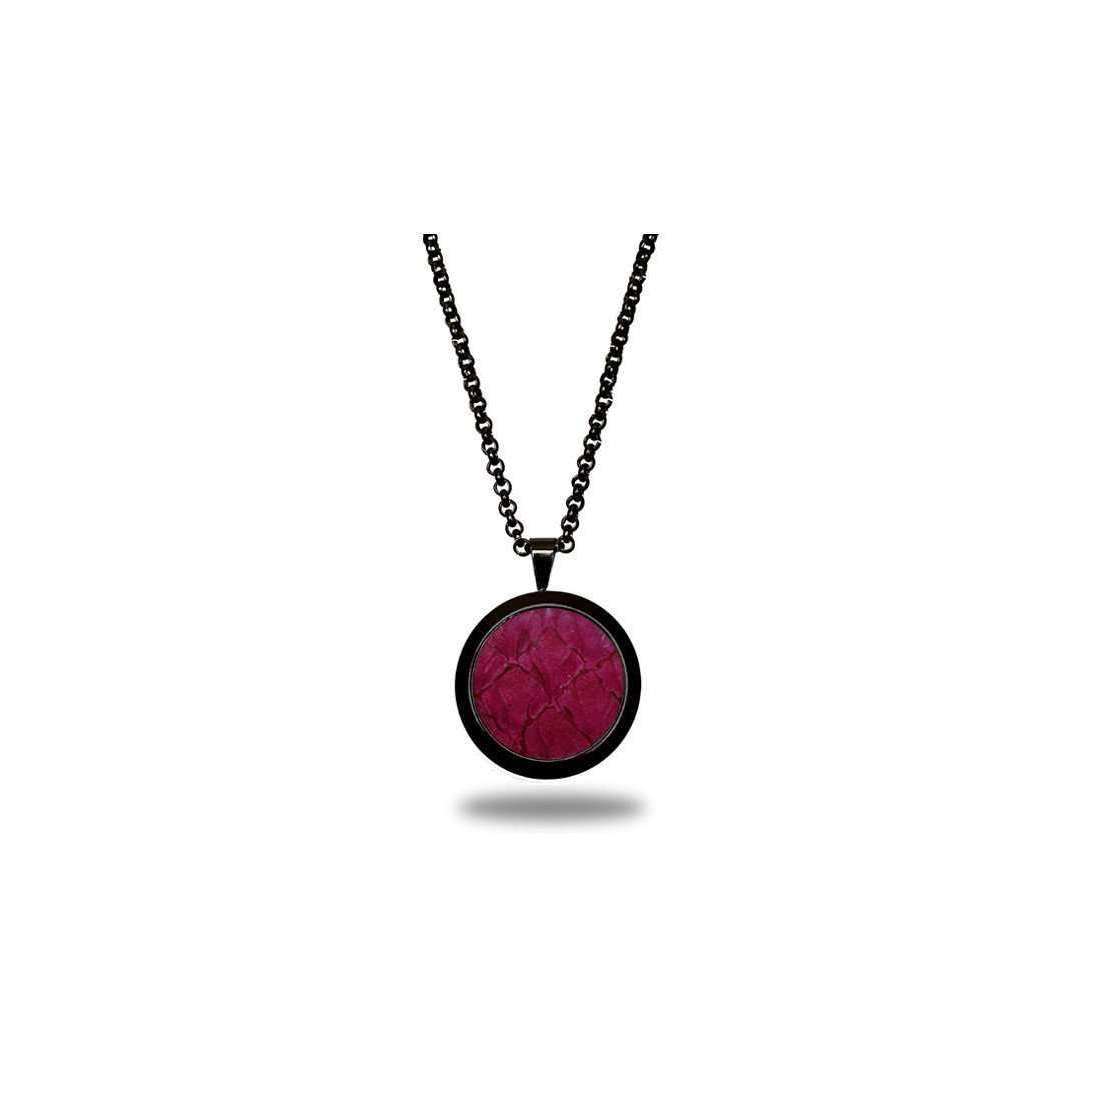 Deep Pink Atlantic Salmon Leather Pendant - Black Finish-Necklaces-Marlin Birna-JewelStreet